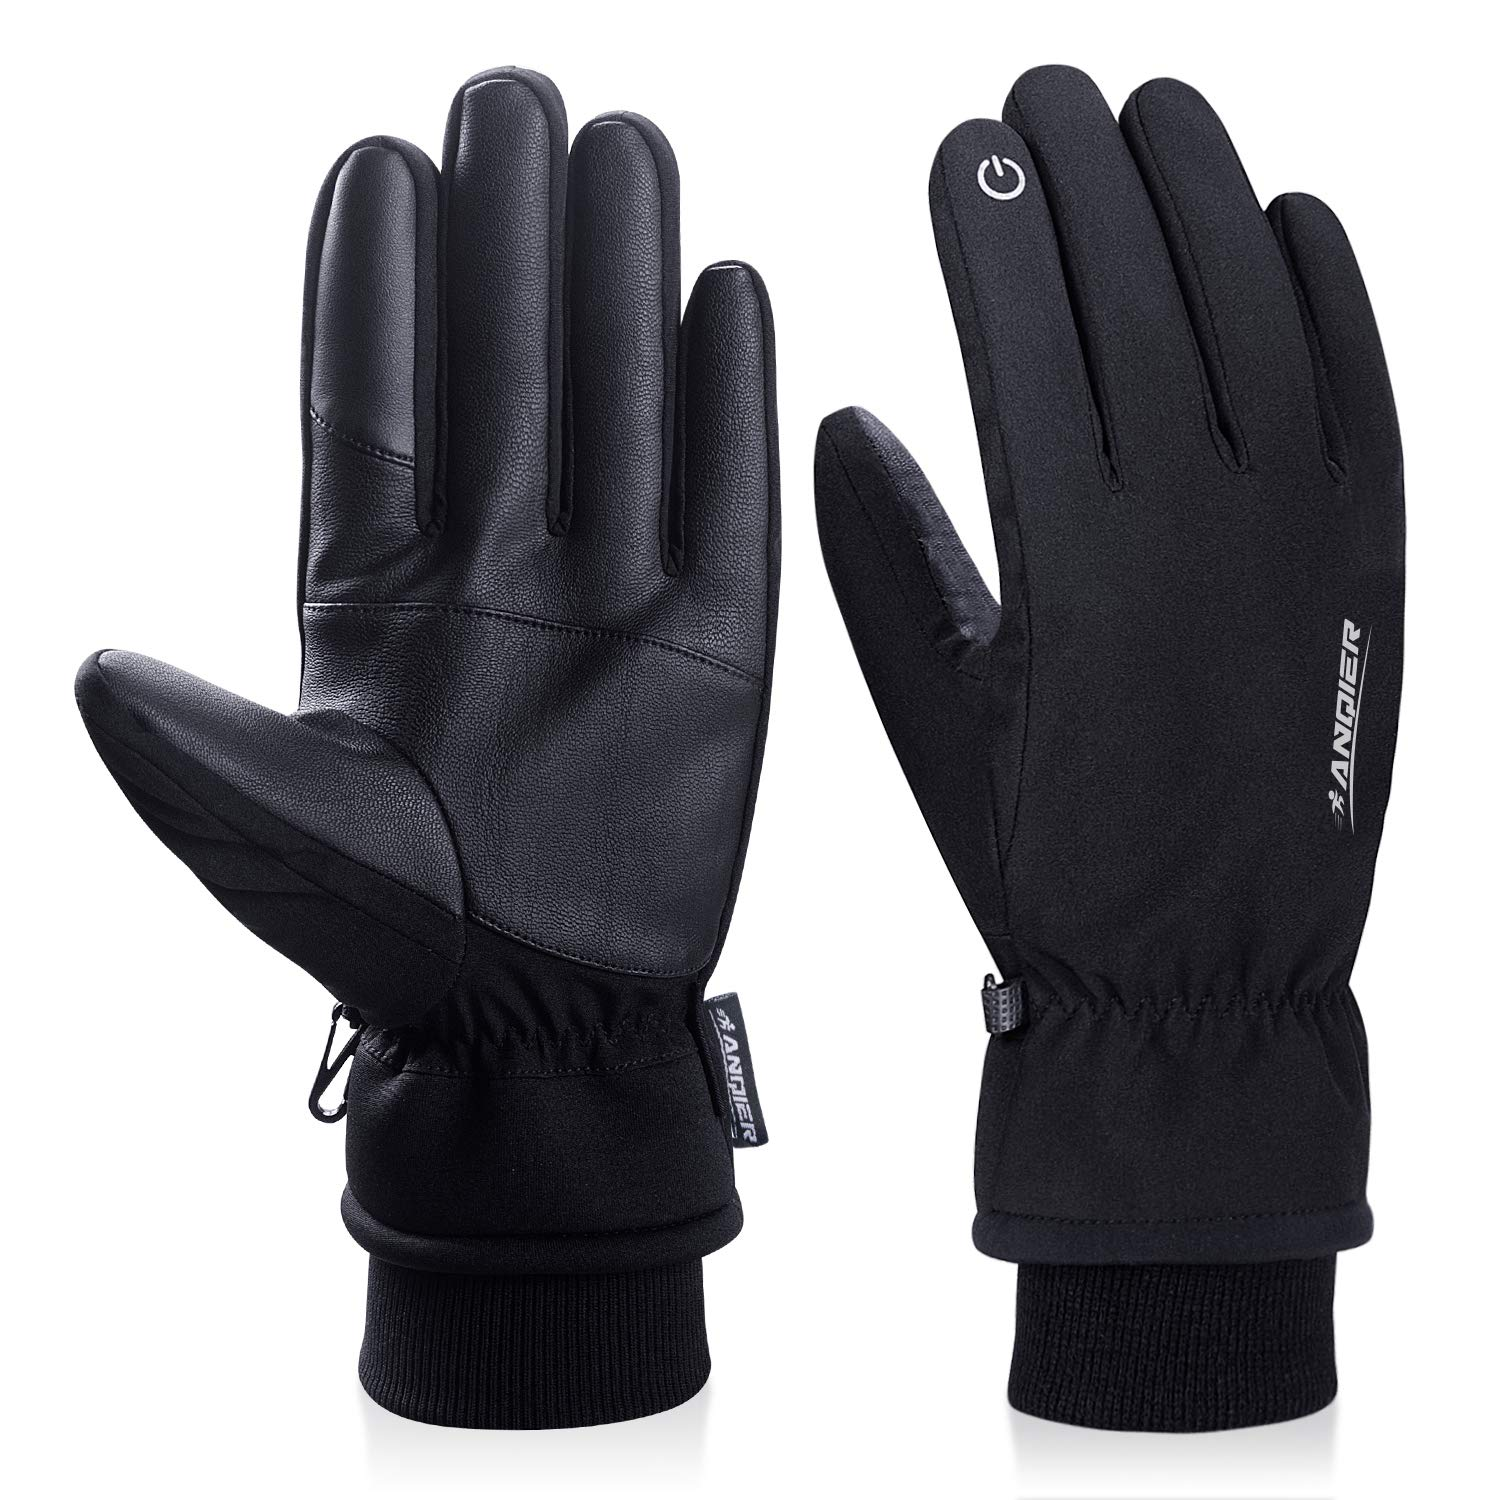 Apparel Accessories 2019 1pair Suede Touch Screen Gloves Men Women Winter Thermal Gloves Outdoor Cycling Sport Ski Gloves Waterproof